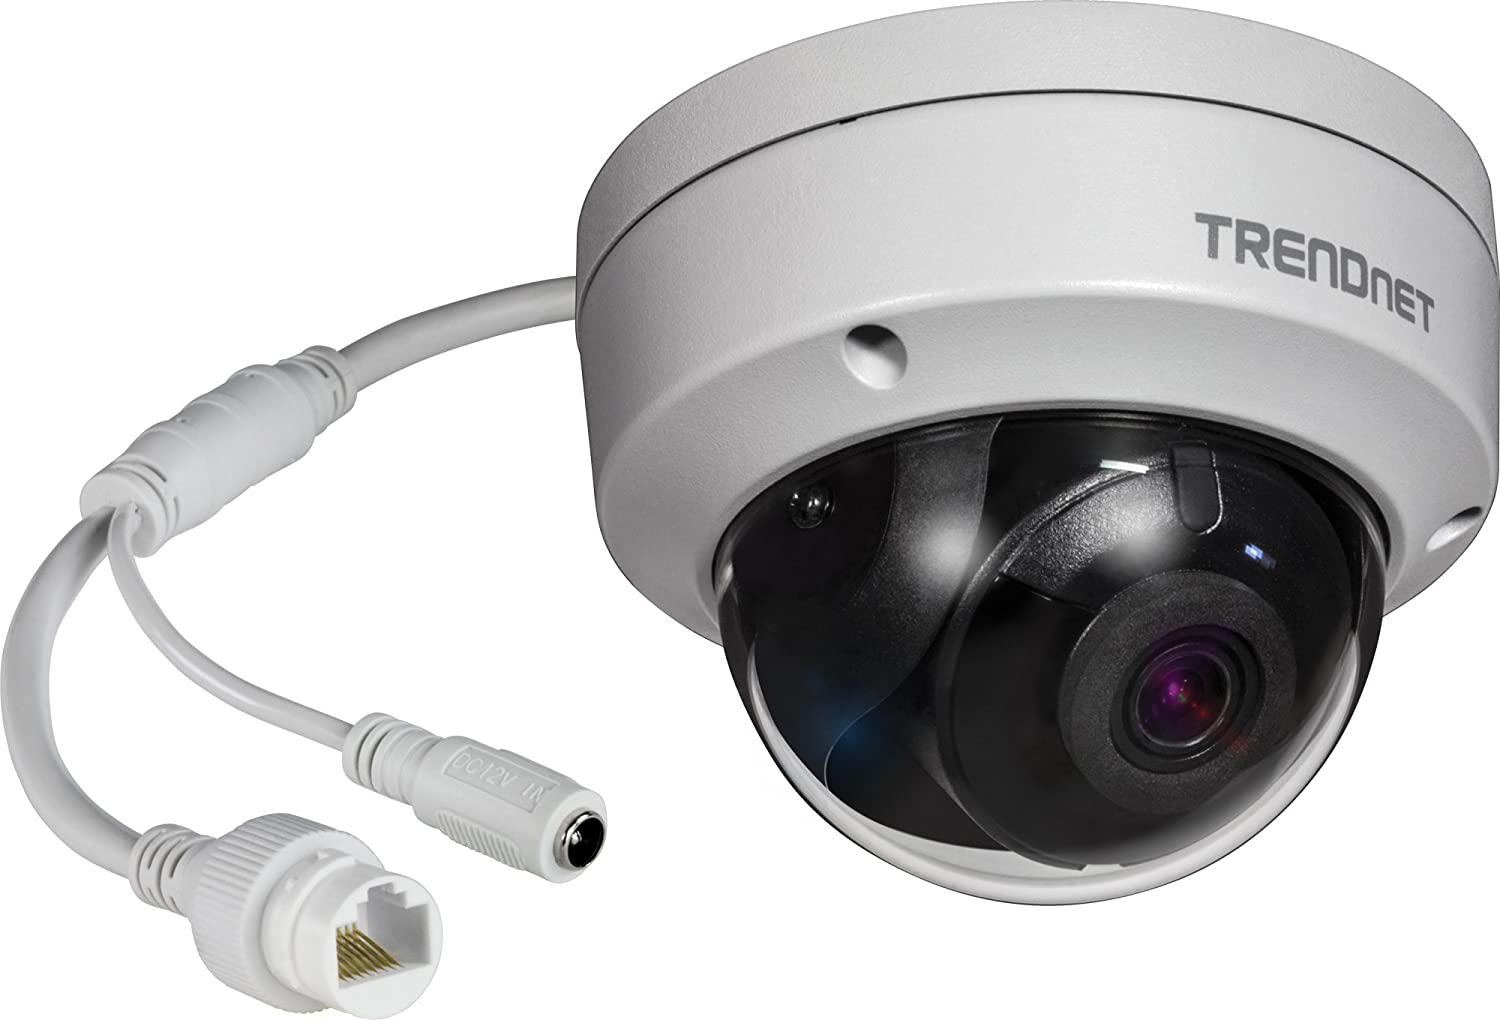 TRENDnet Indoor 2MP 1080p HD WDR PoE Day/Night IR Mini Pan/Tilt Network Camera, H.264+ Video Compression, TV-IP410PI